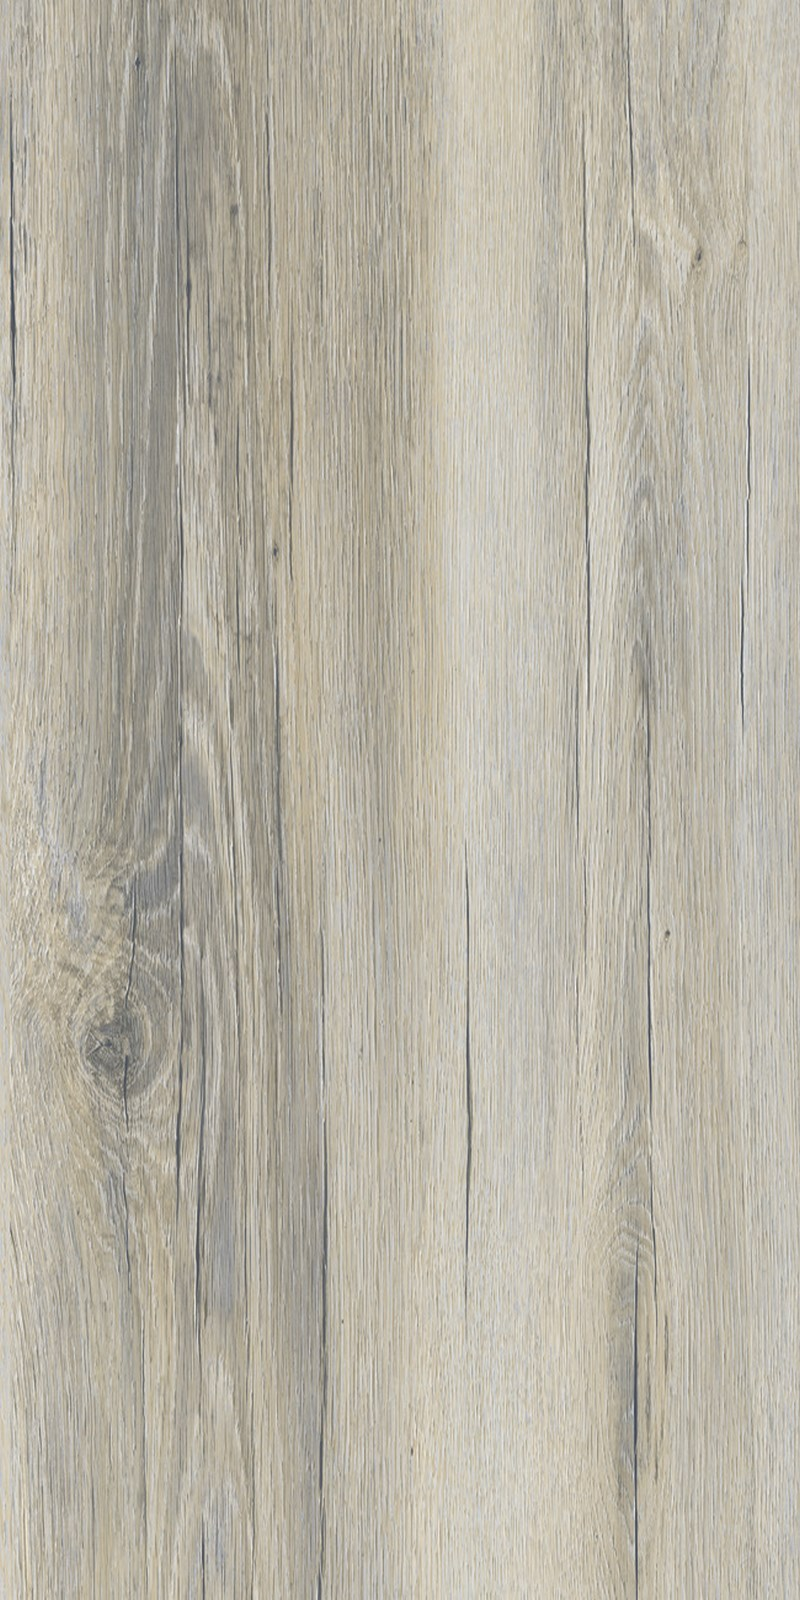 Get Best Quotes for Greenlam Country Wood Finish 8X4 Laminates in India